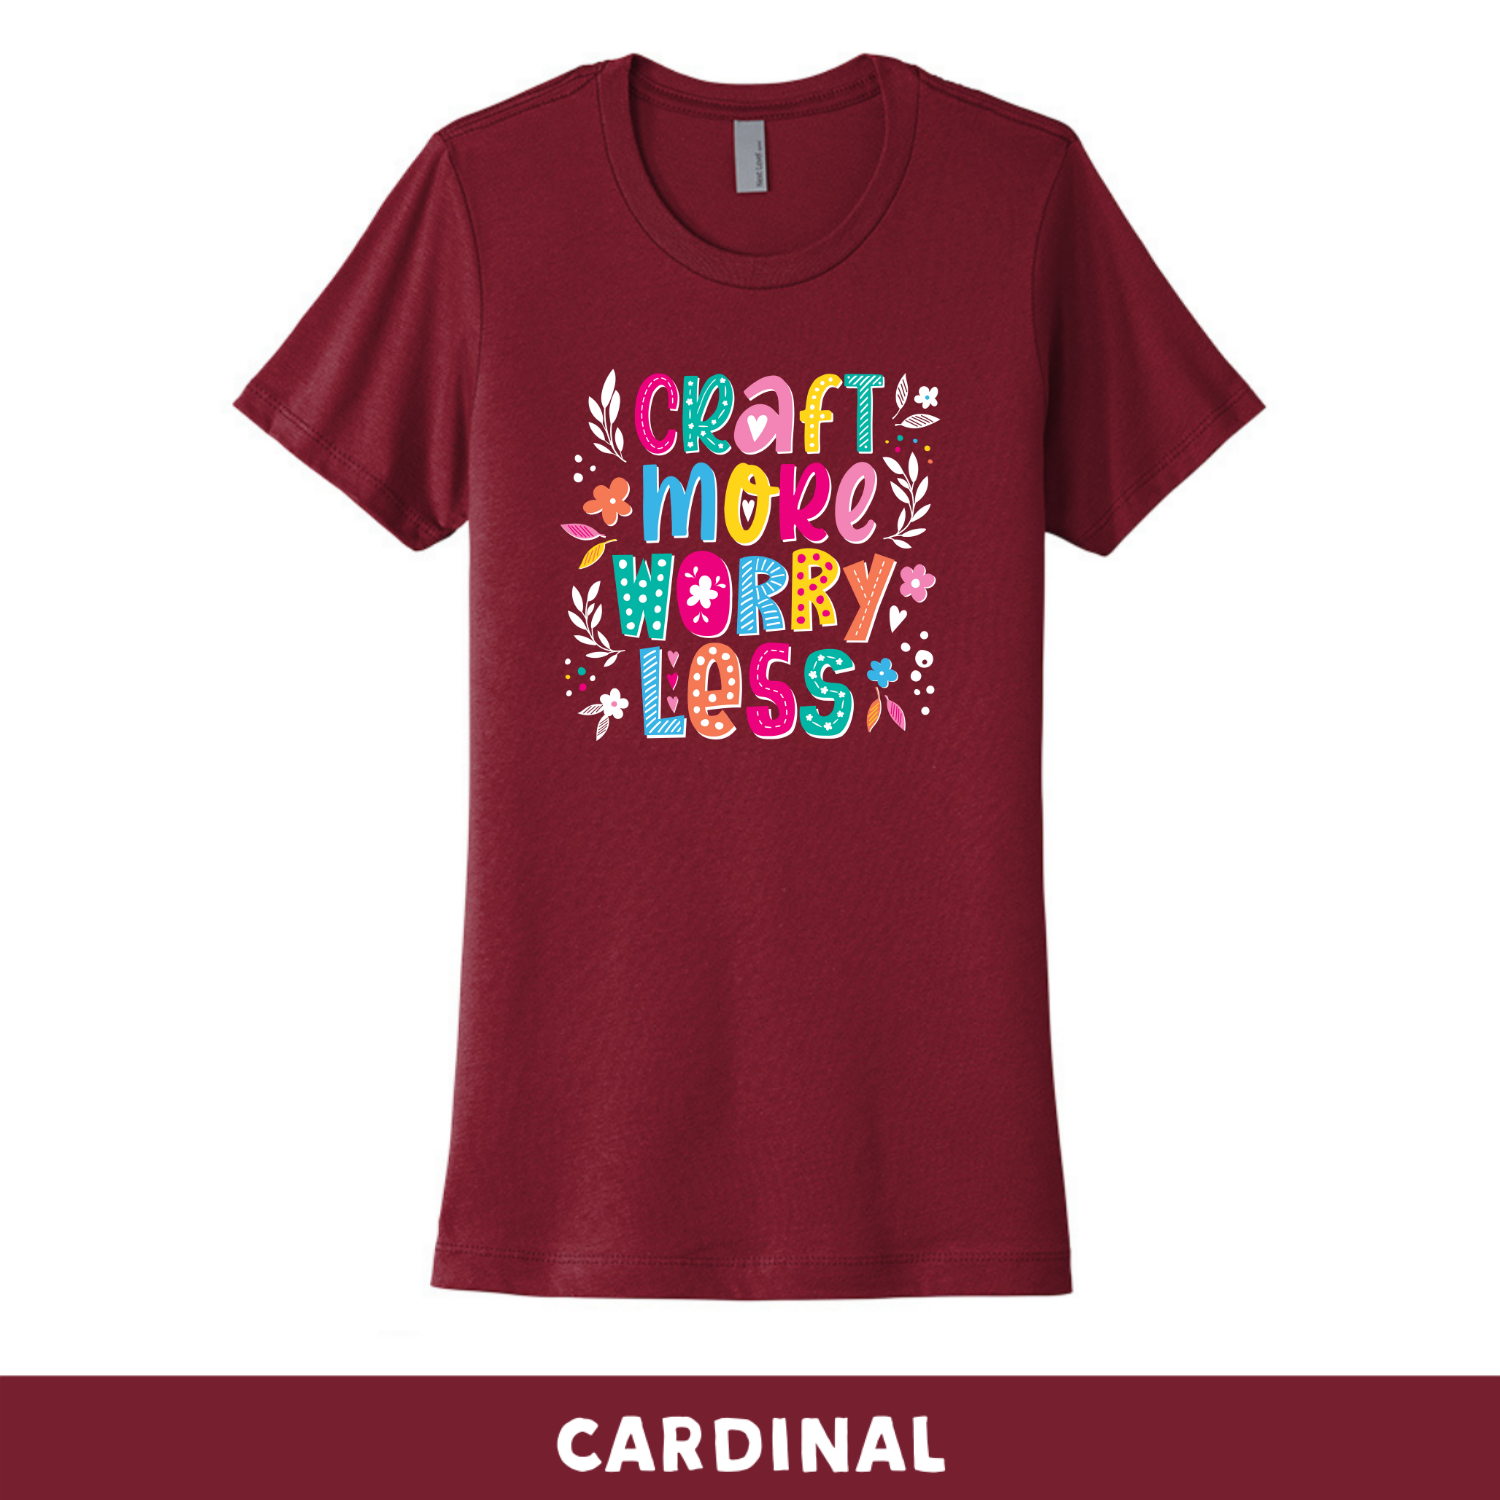 Cardinal - Crew Neck Boyfriend Tee - Craft More Worry Less